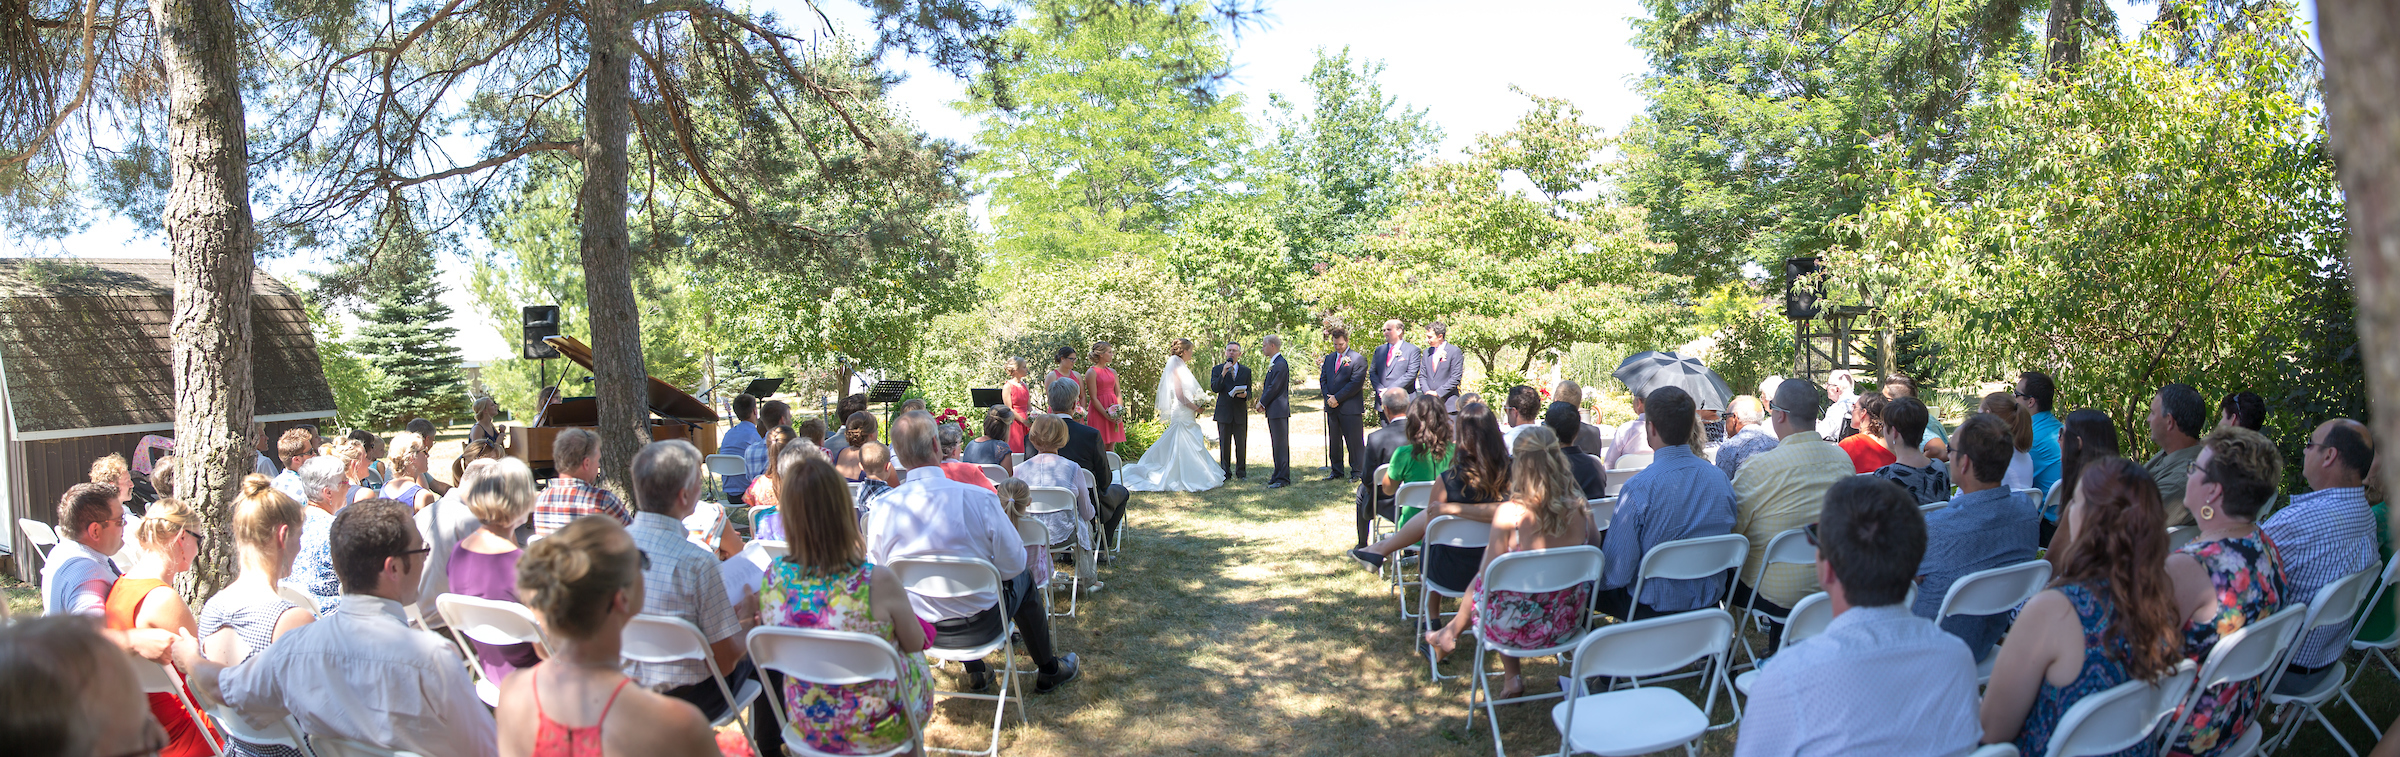 BeautifulSummerGardenWedding_0151